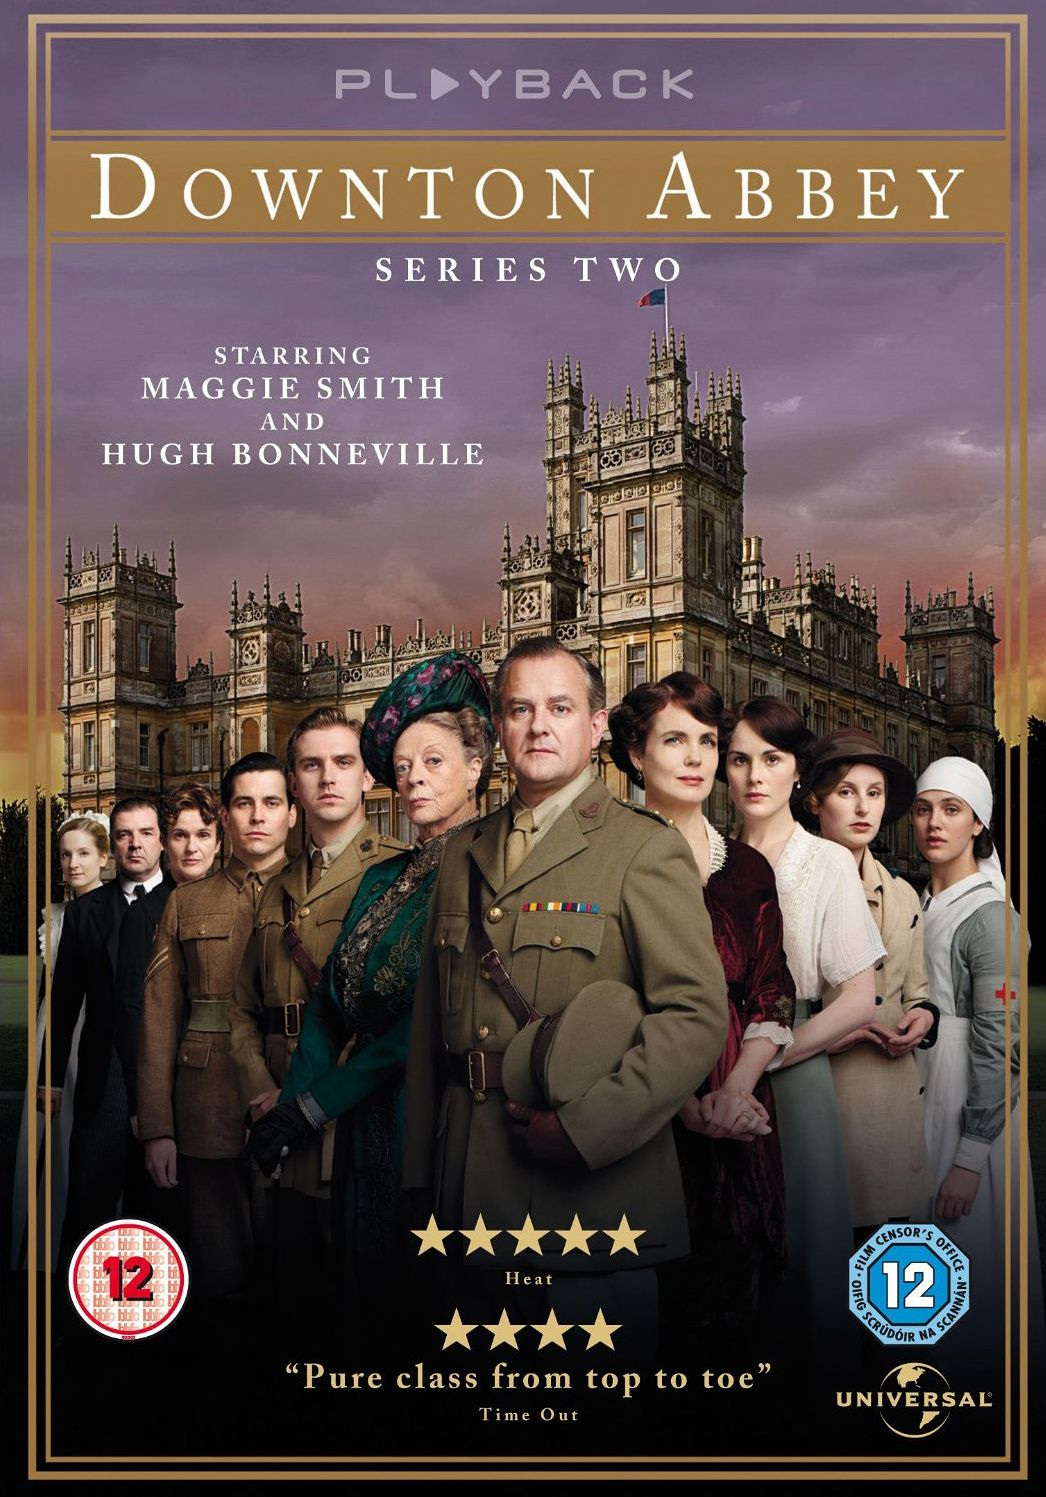 Downton Abbey Downton abbey dvd, Downton abbey series